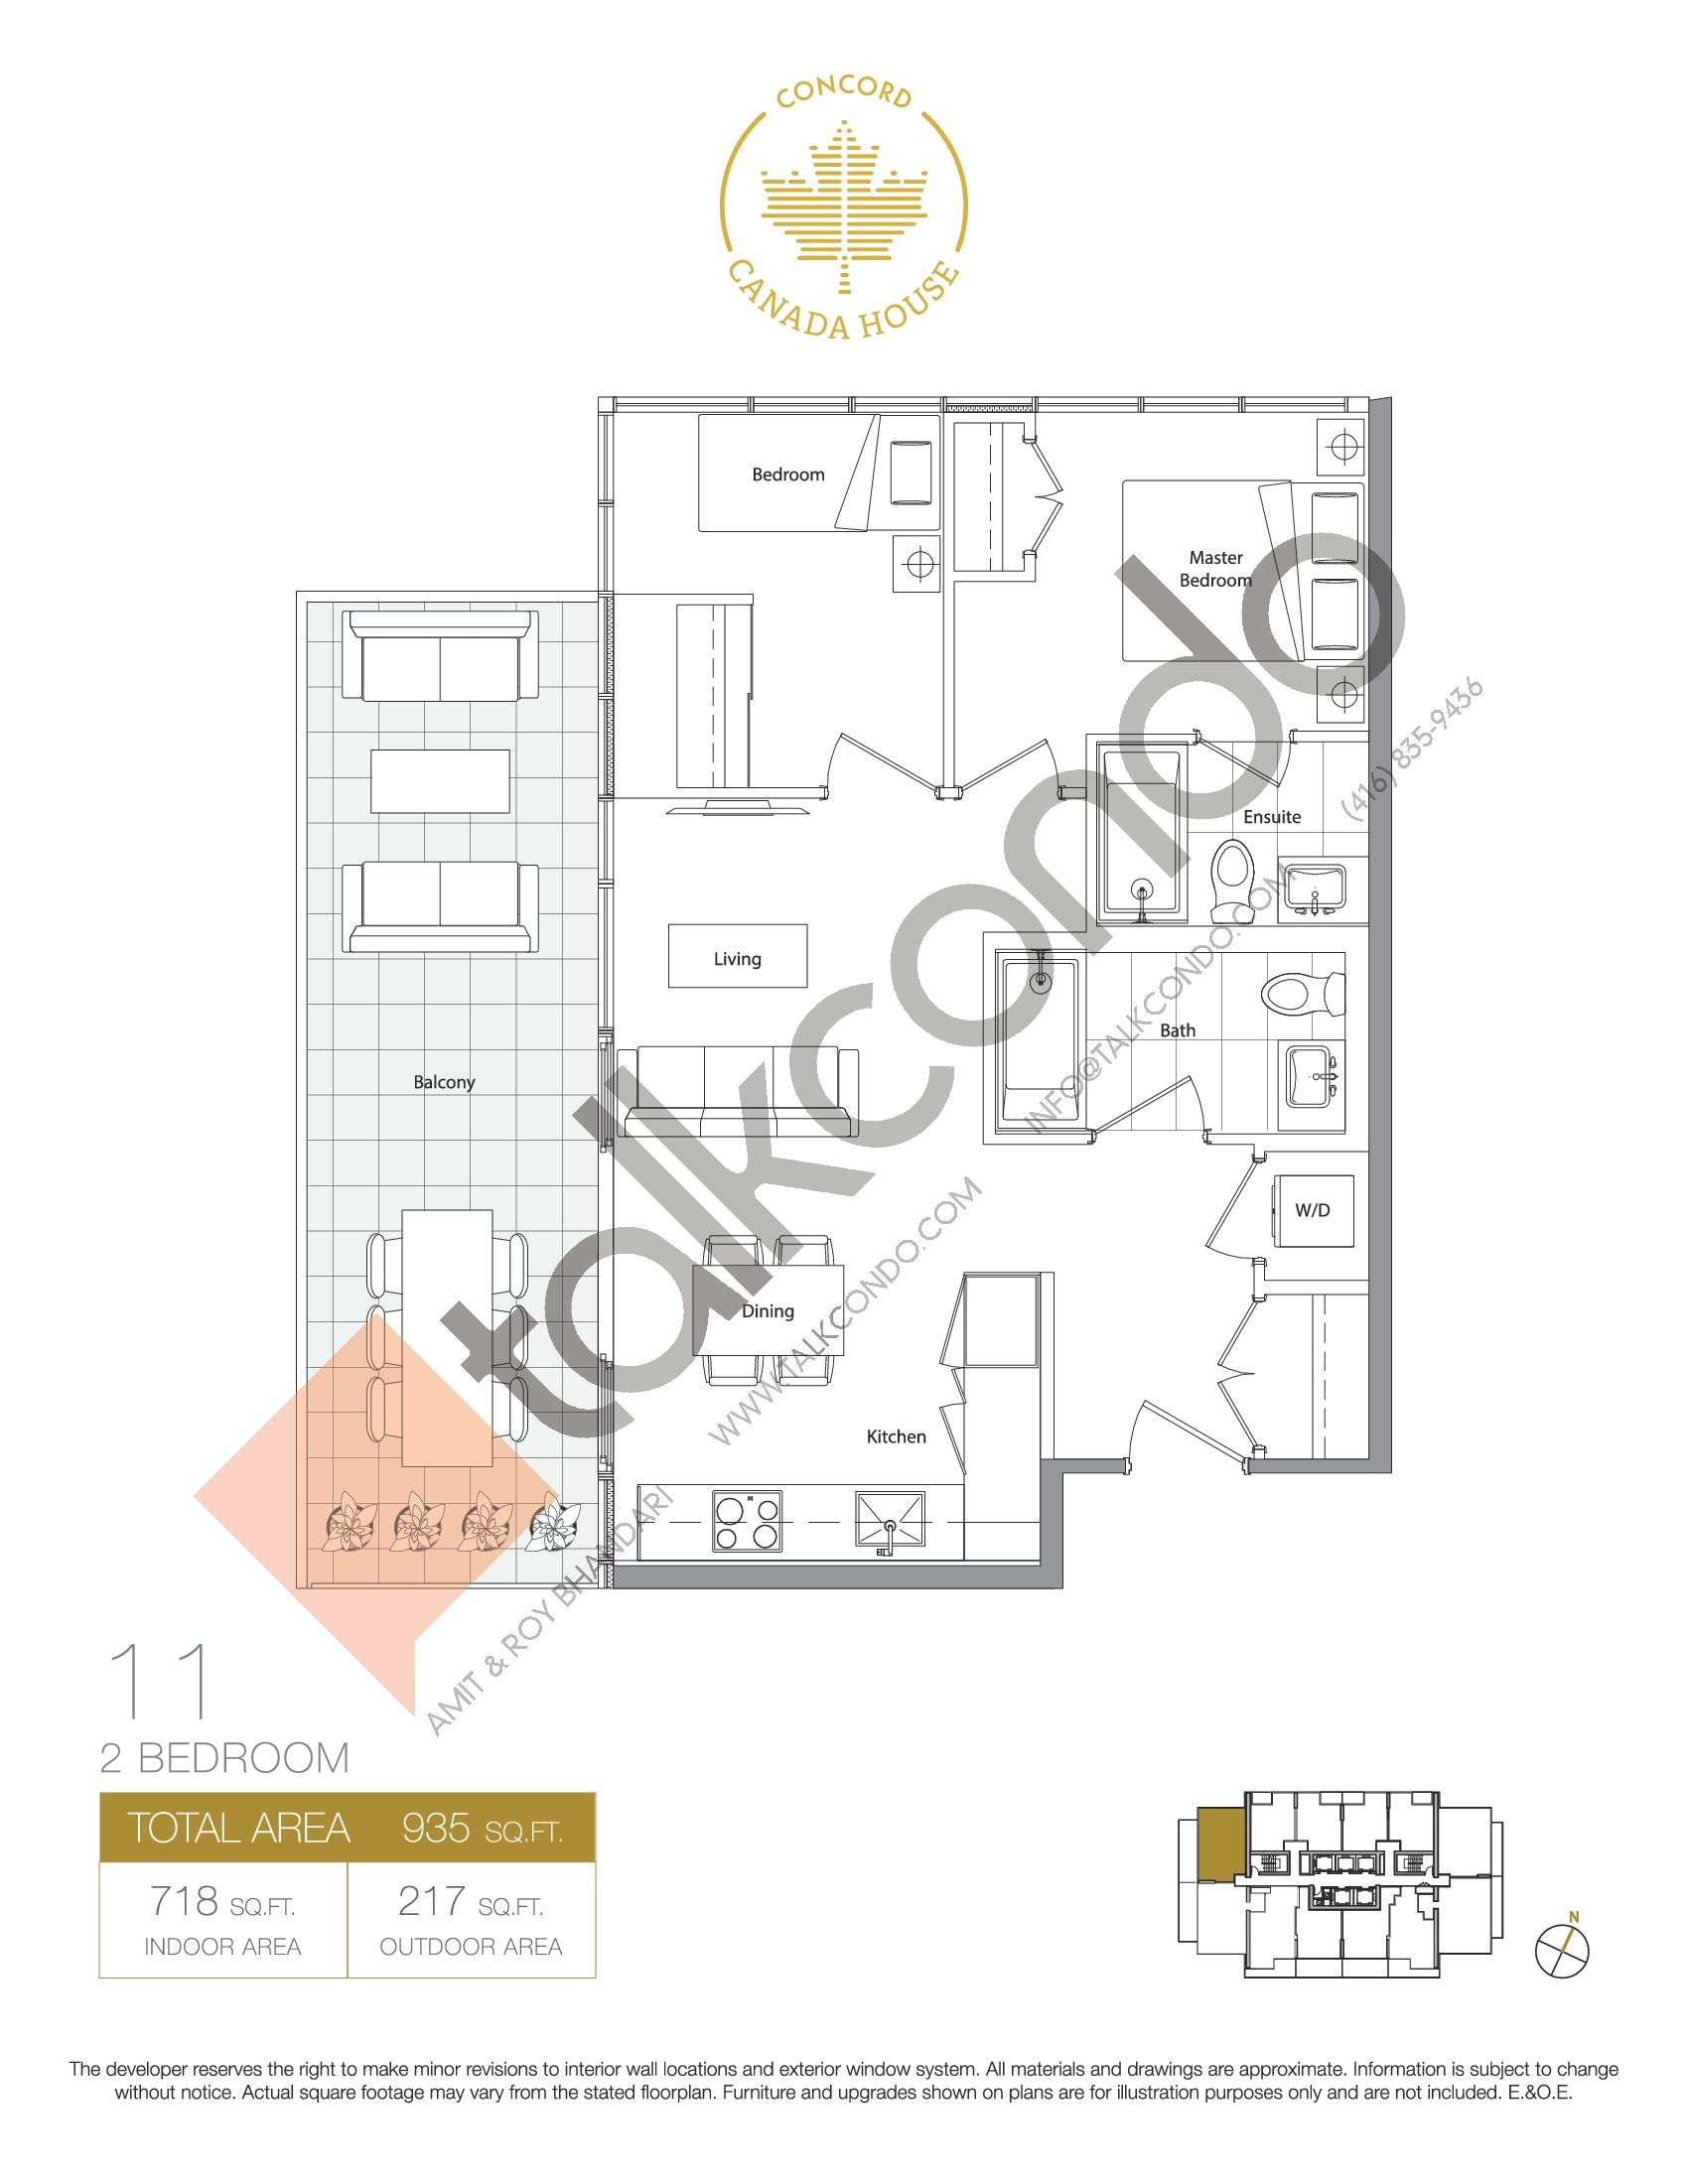 11 - East Tower Floor Plan at Concord Canada House Condos - 718 sq.ft